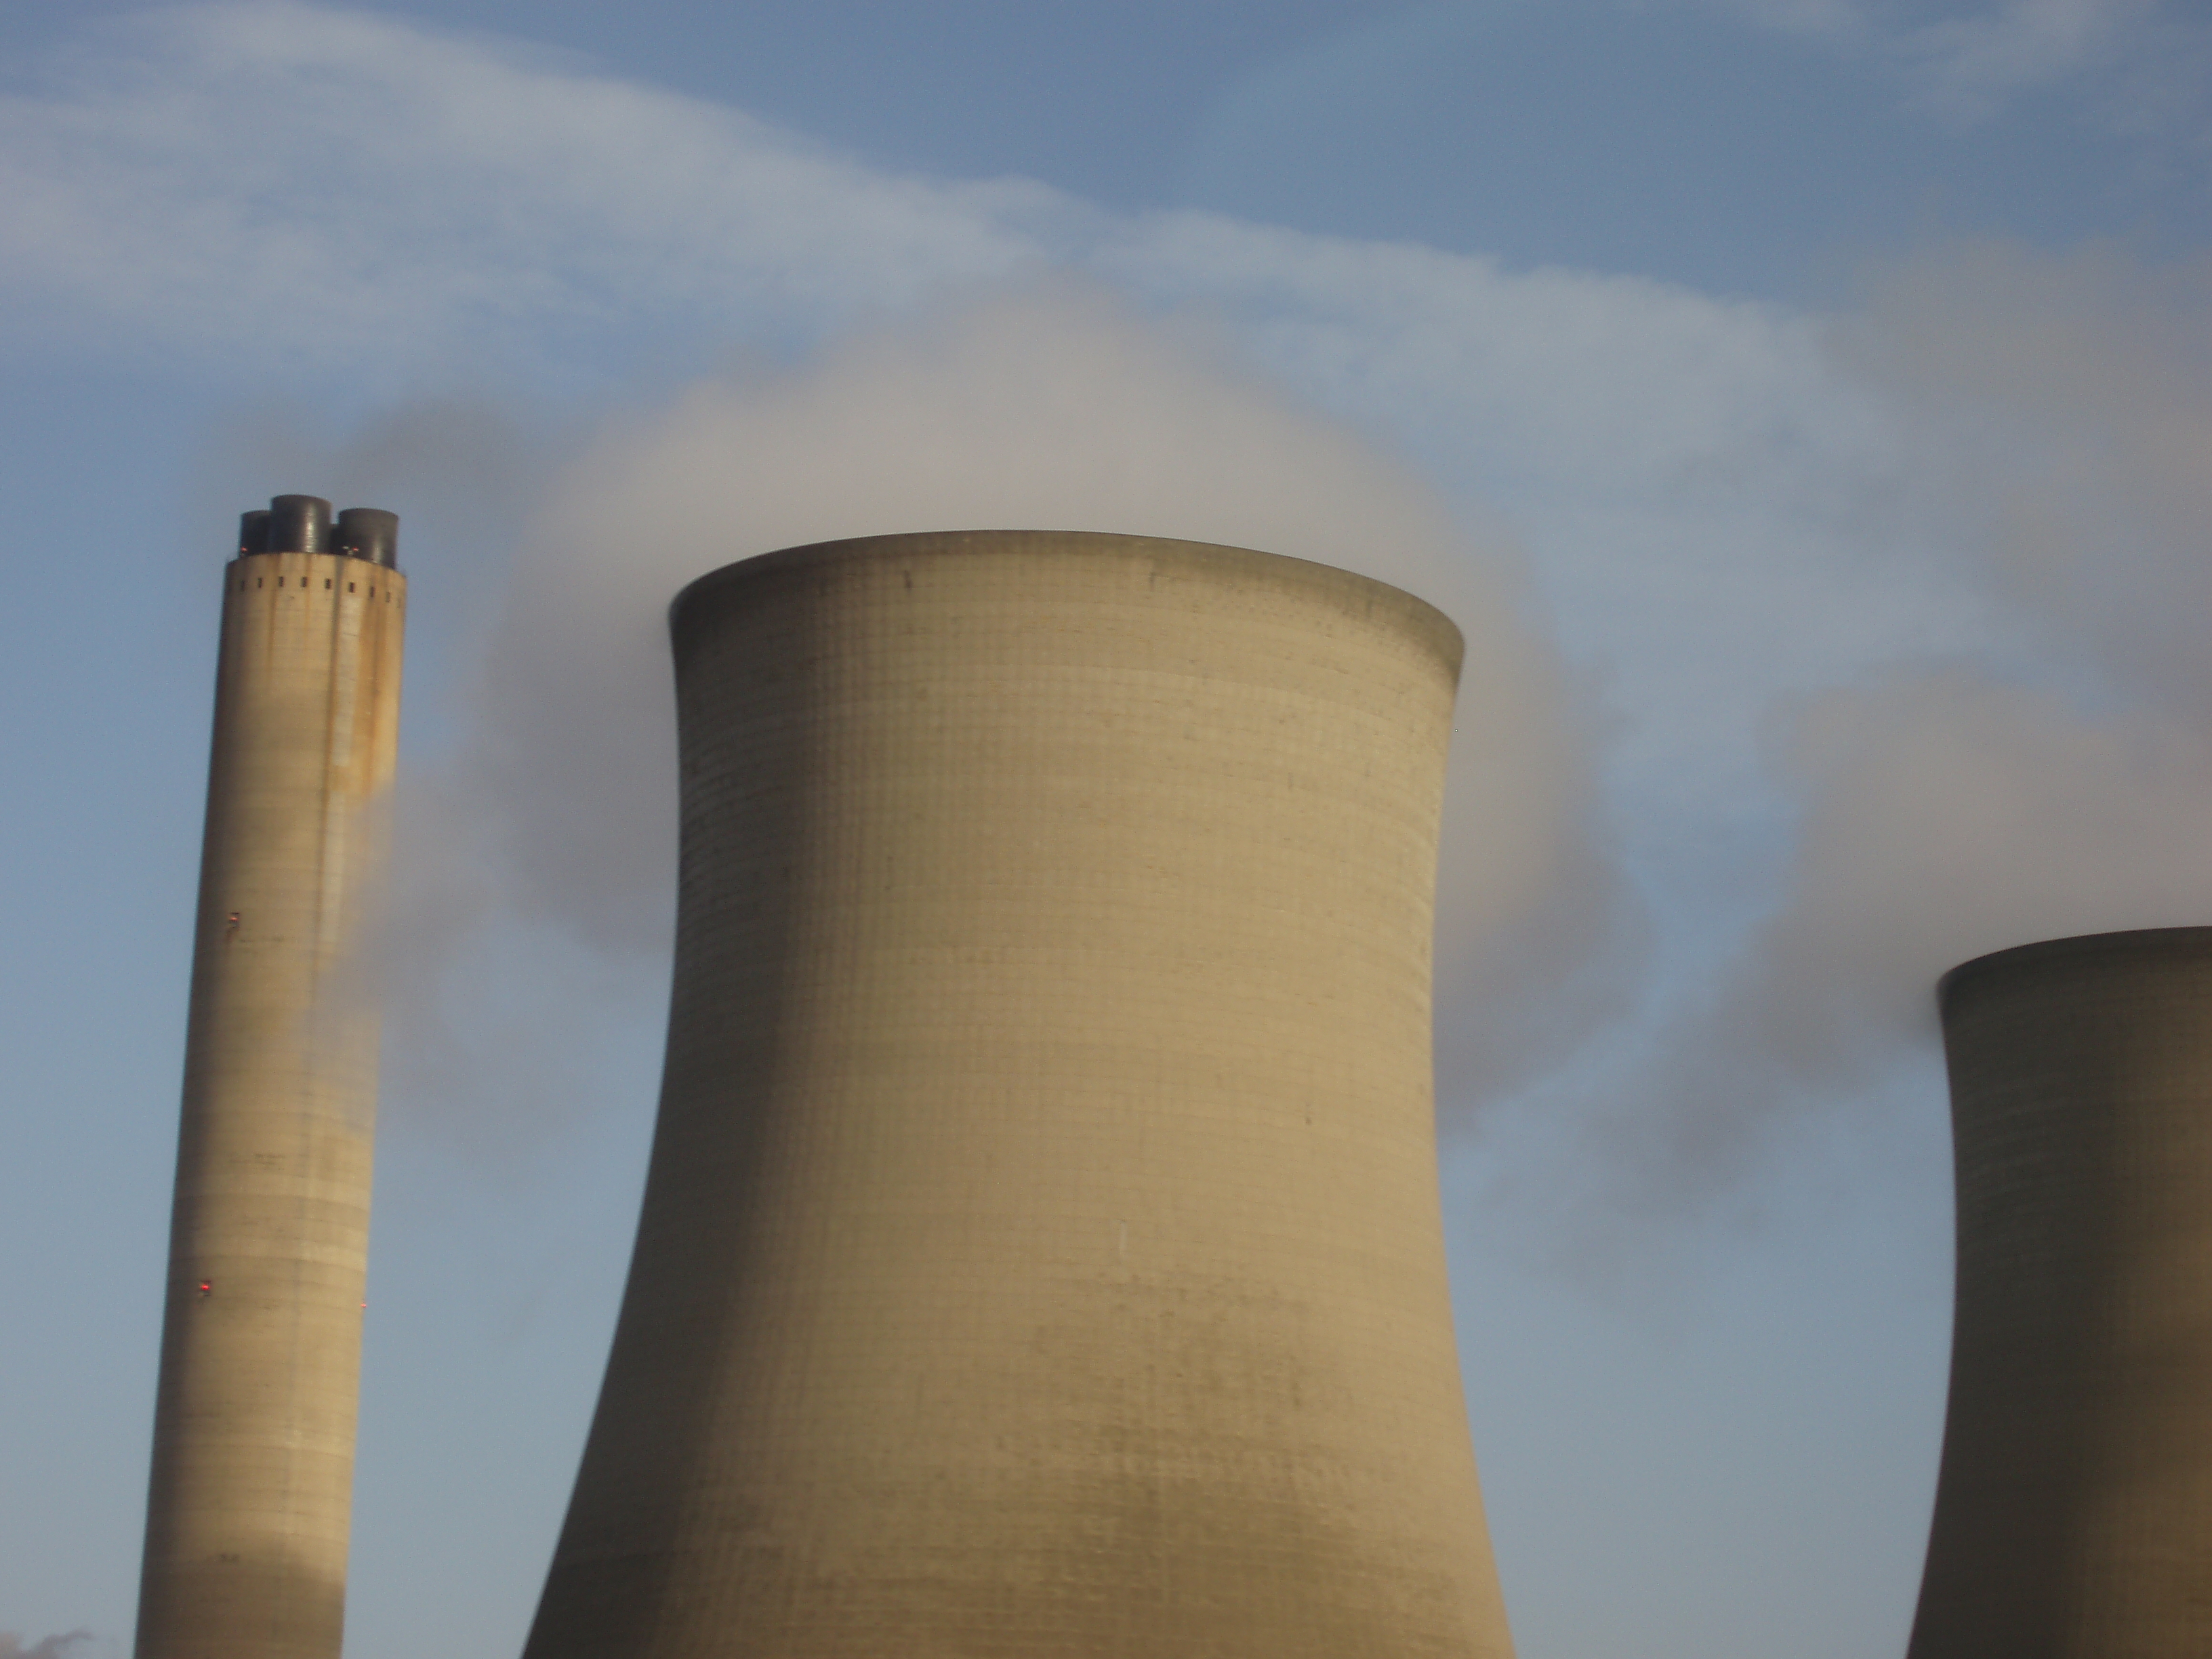 blurred cooling towers and chimney